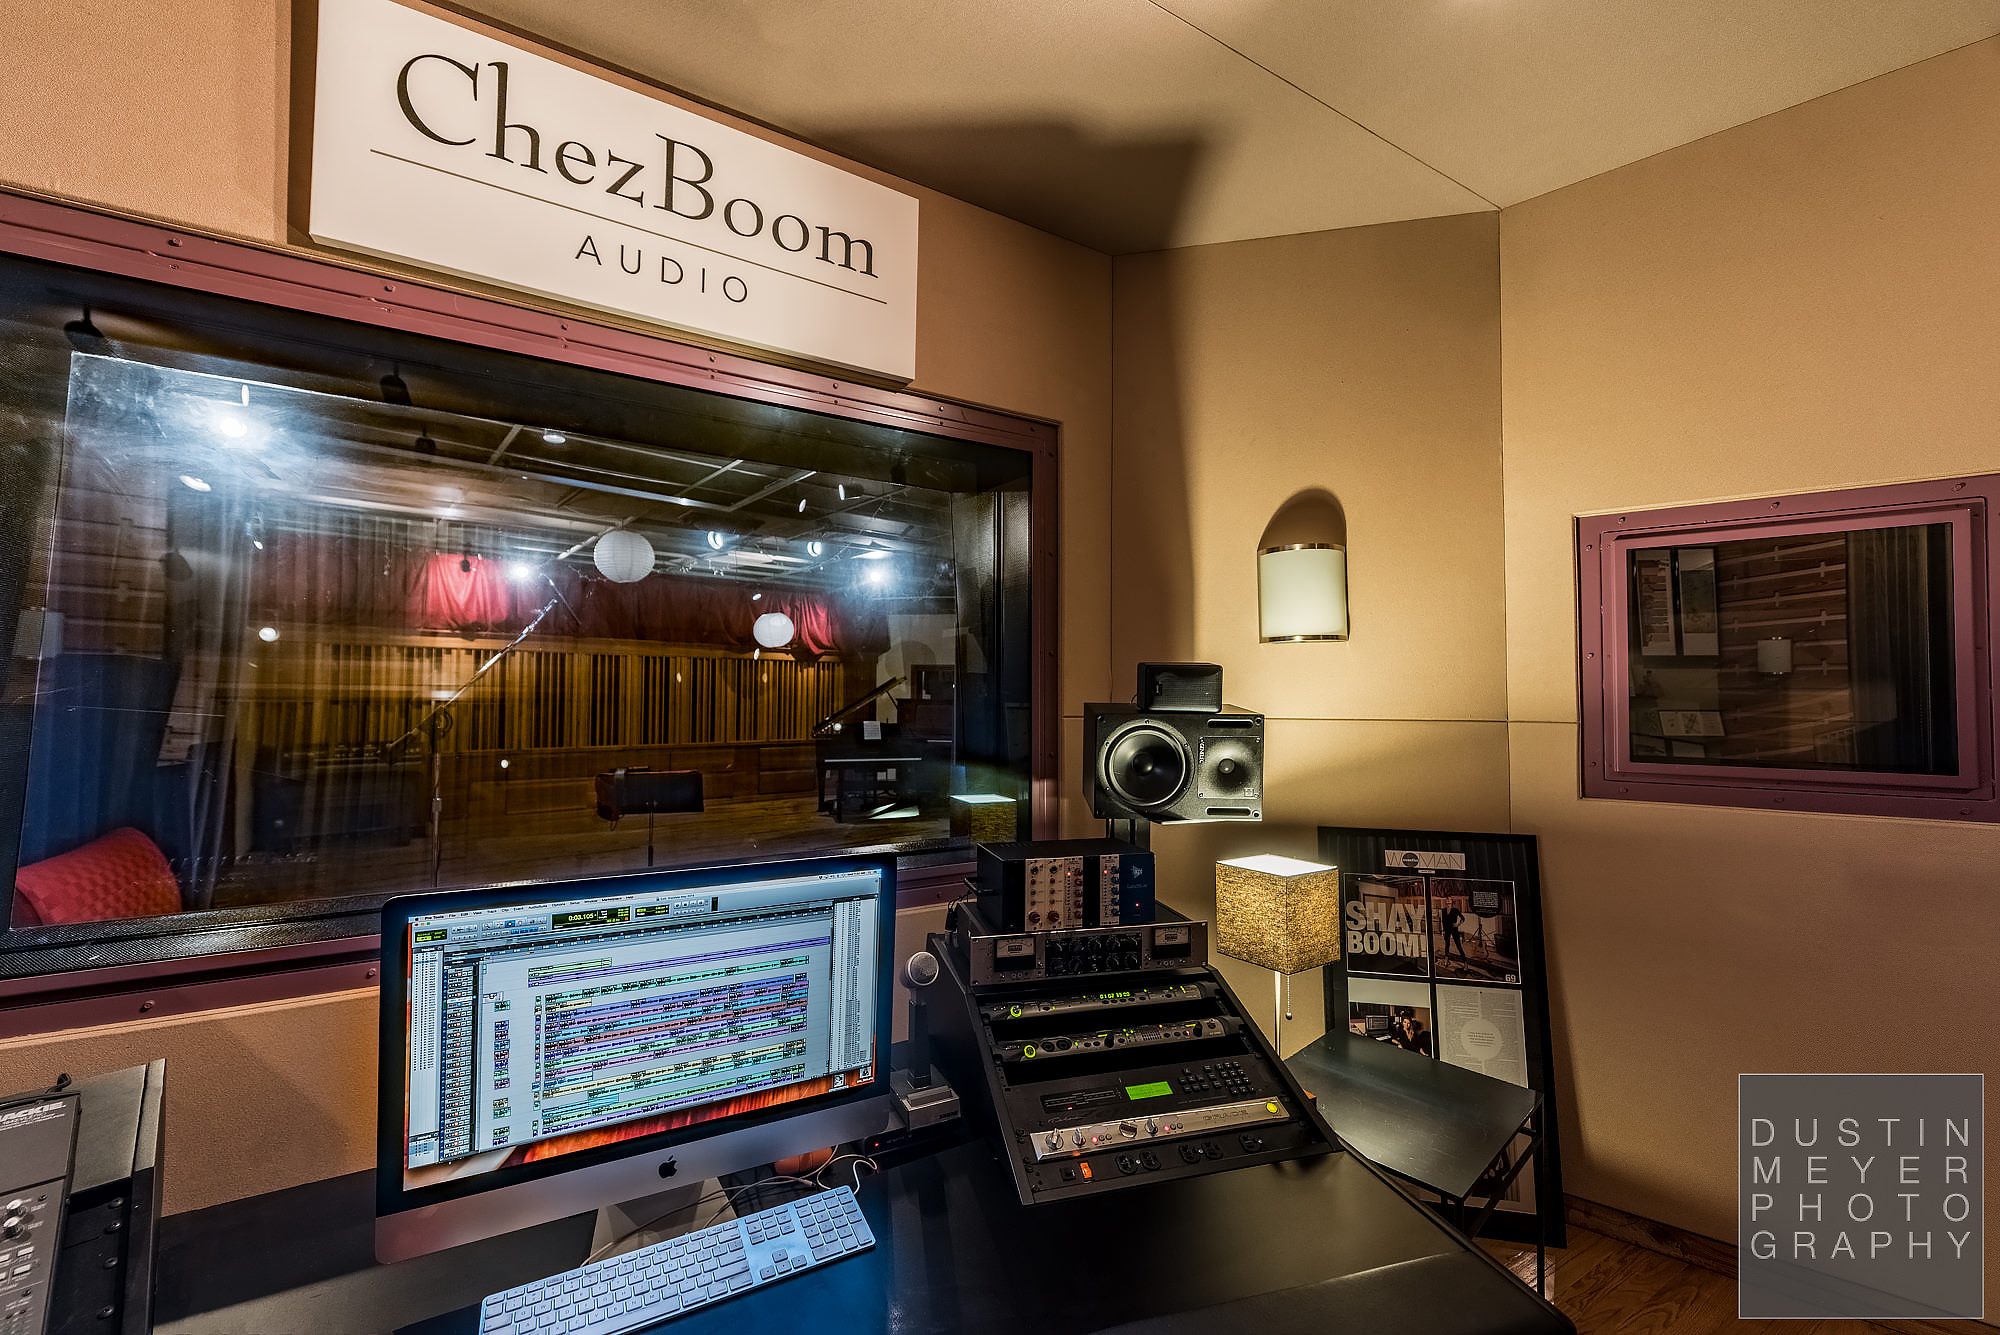 Real Estate Photos: Chez Boom Audio